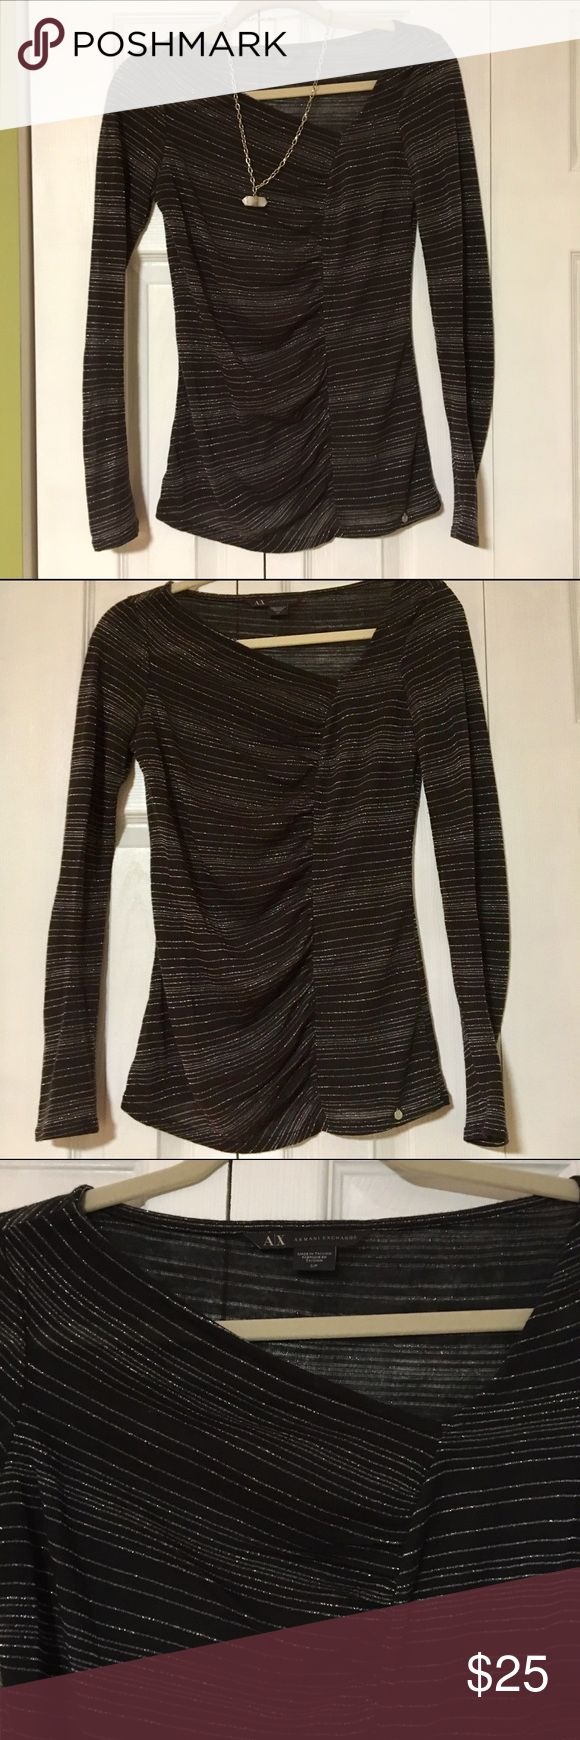 Armani exchange top Asymmetrical neckline with slight gather down front. Silver striped pattern throughout. Small A|X charm on bottom. EUC.  💸 Reasonable offers considered.  ↘️ Use OFFER button.   🚫 NO TRADES! ⚡️Fast Shipper! A/X Armani Exchange Tops Tees - Long Sleeve